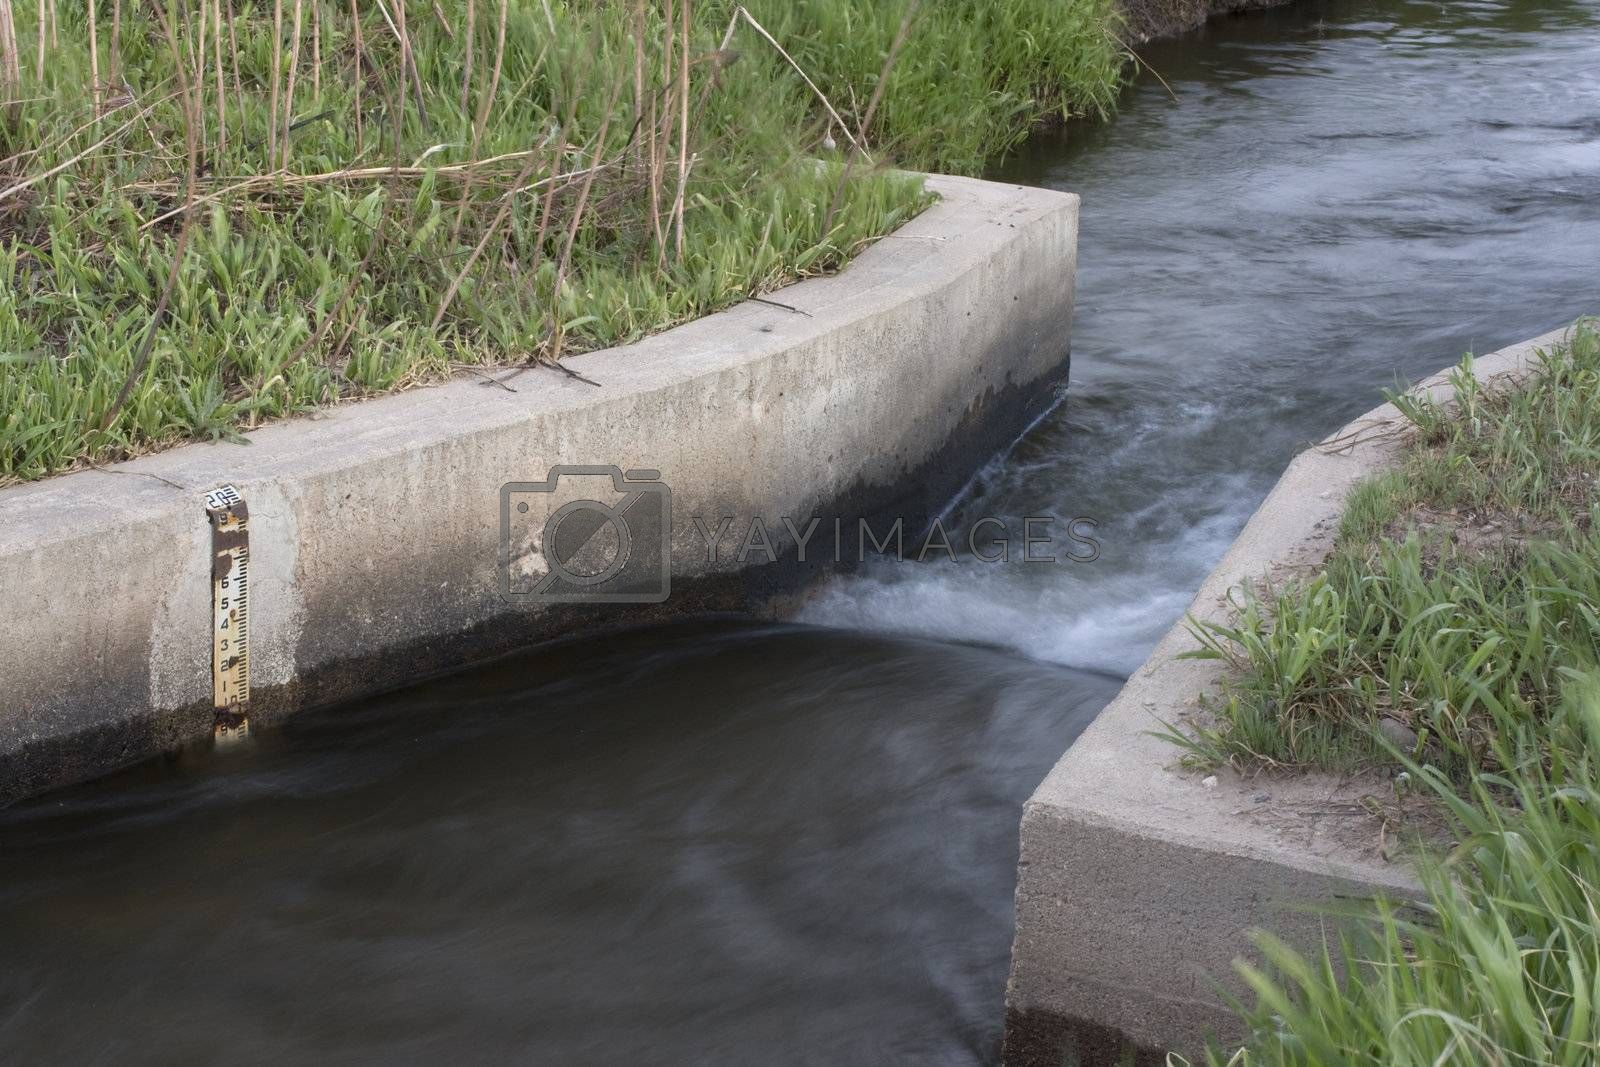 irrigation ditch with a flow measurement concrete structure and water scale, Colorado